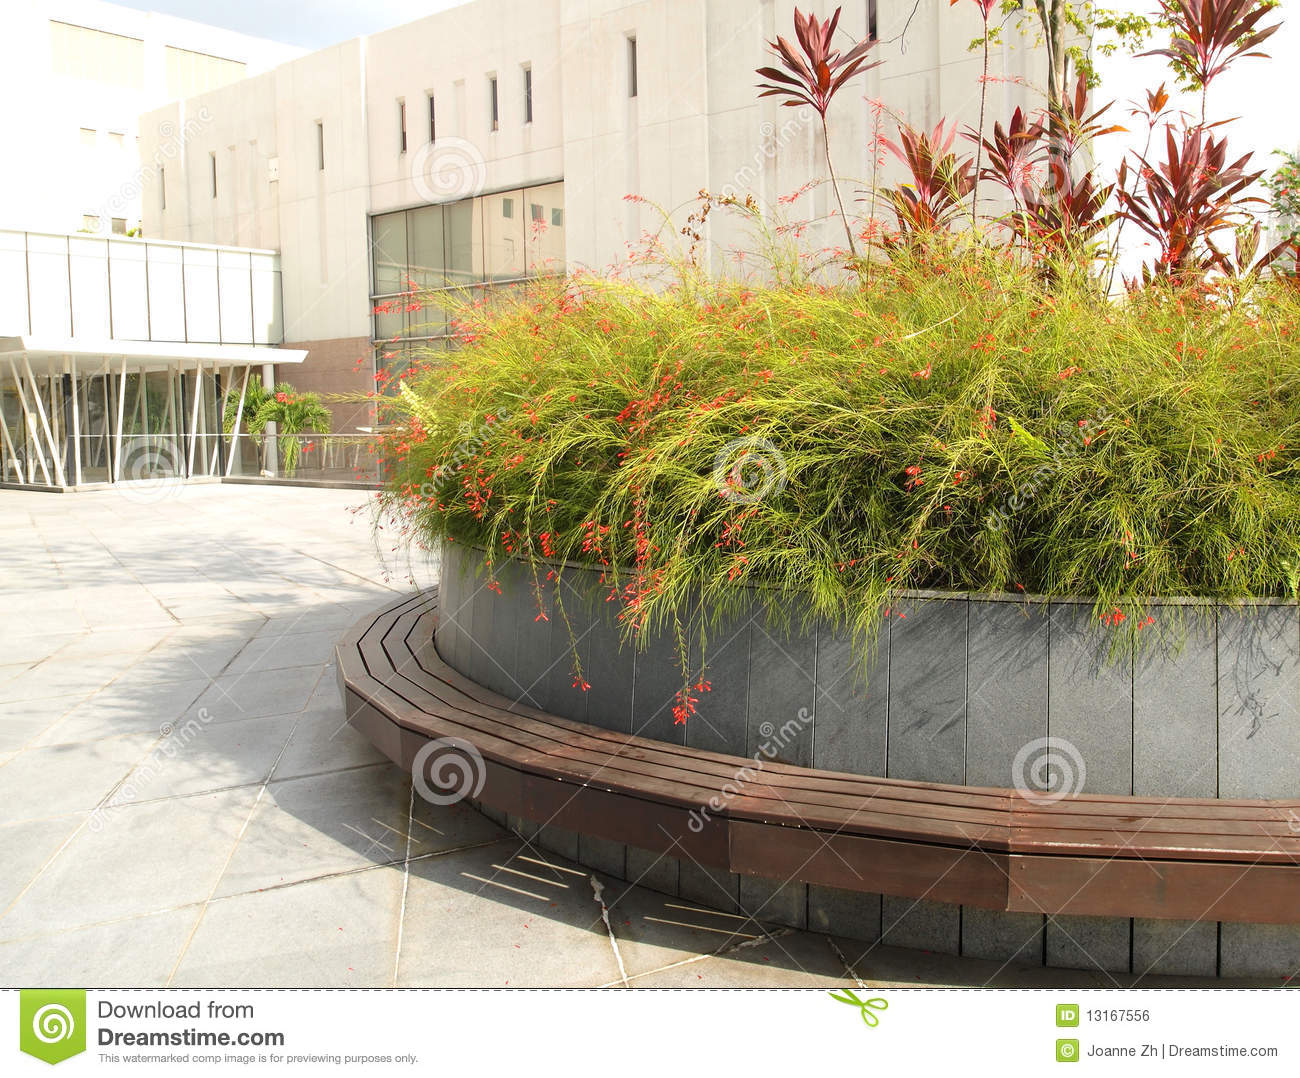 Landscaping, City Offices Area Stock Photo - Image: 13167556